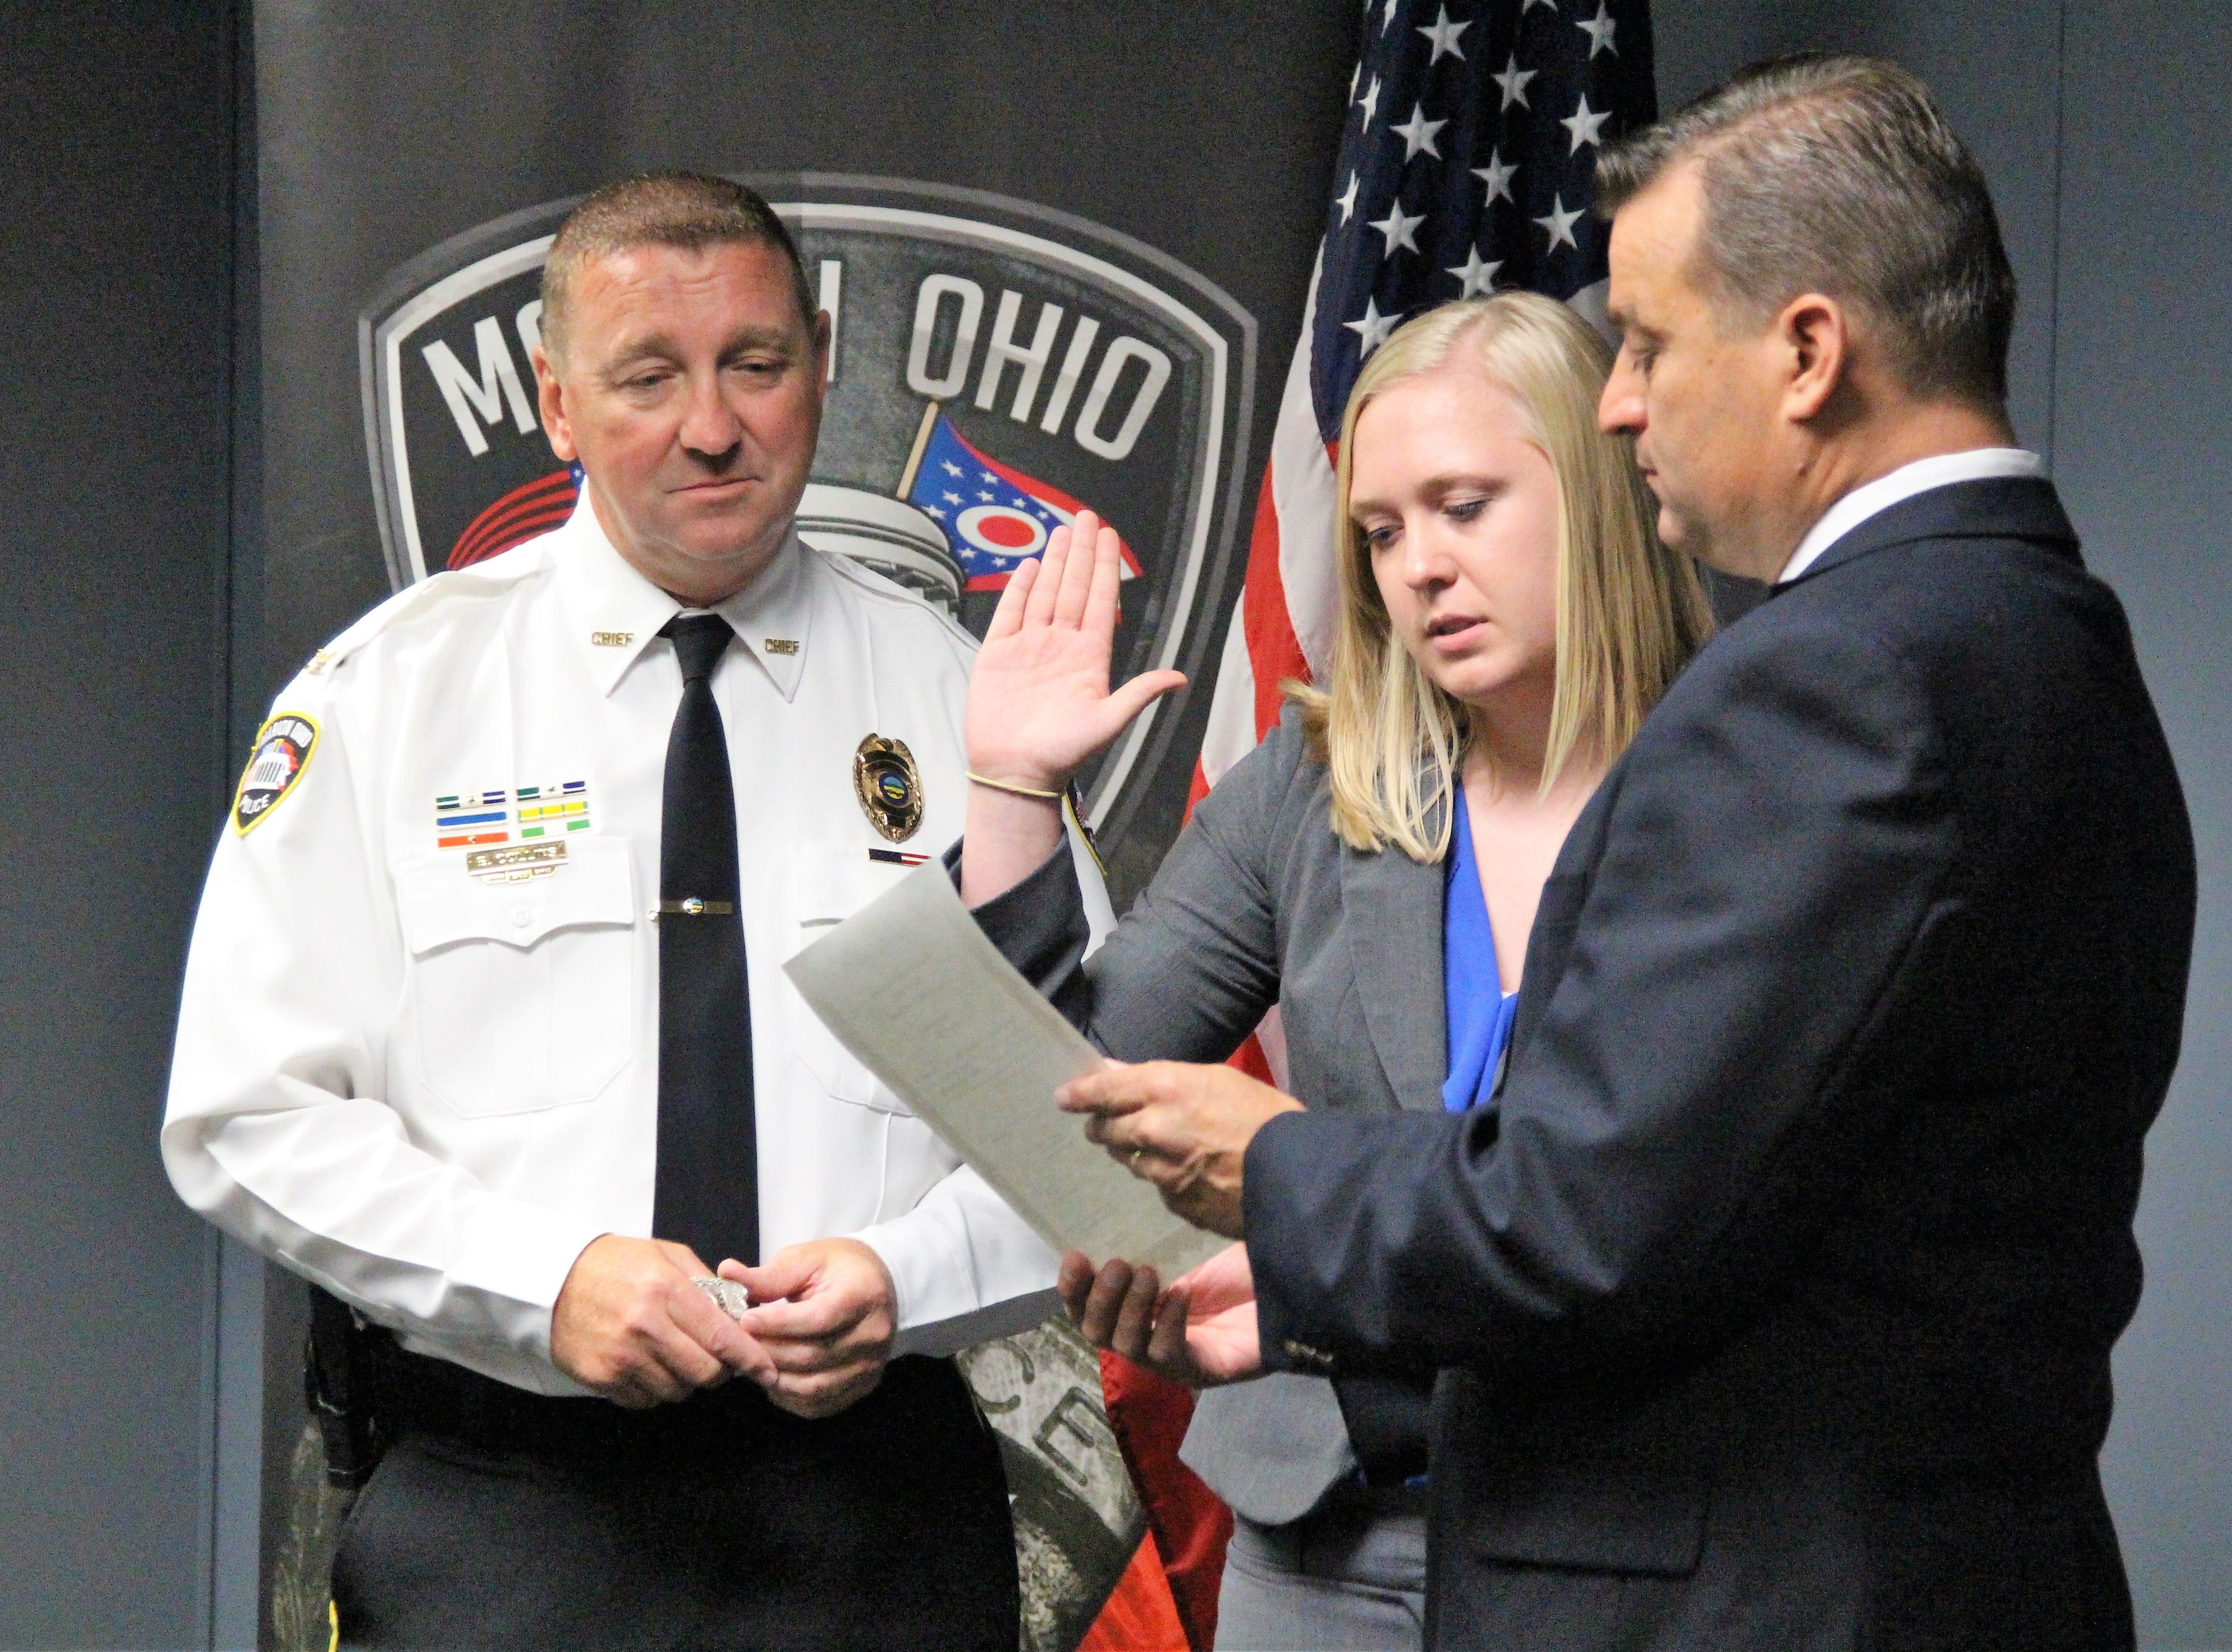 Marion Police Chief Bill Collins watches as new hire Kaitlyn Meadows is issued the oath of office by Mayor Scott Schertzer on Monday. The Marion Police Department now has 53 sworn-in officers. However Collins said that is down from the departments ideal 65-member roster.